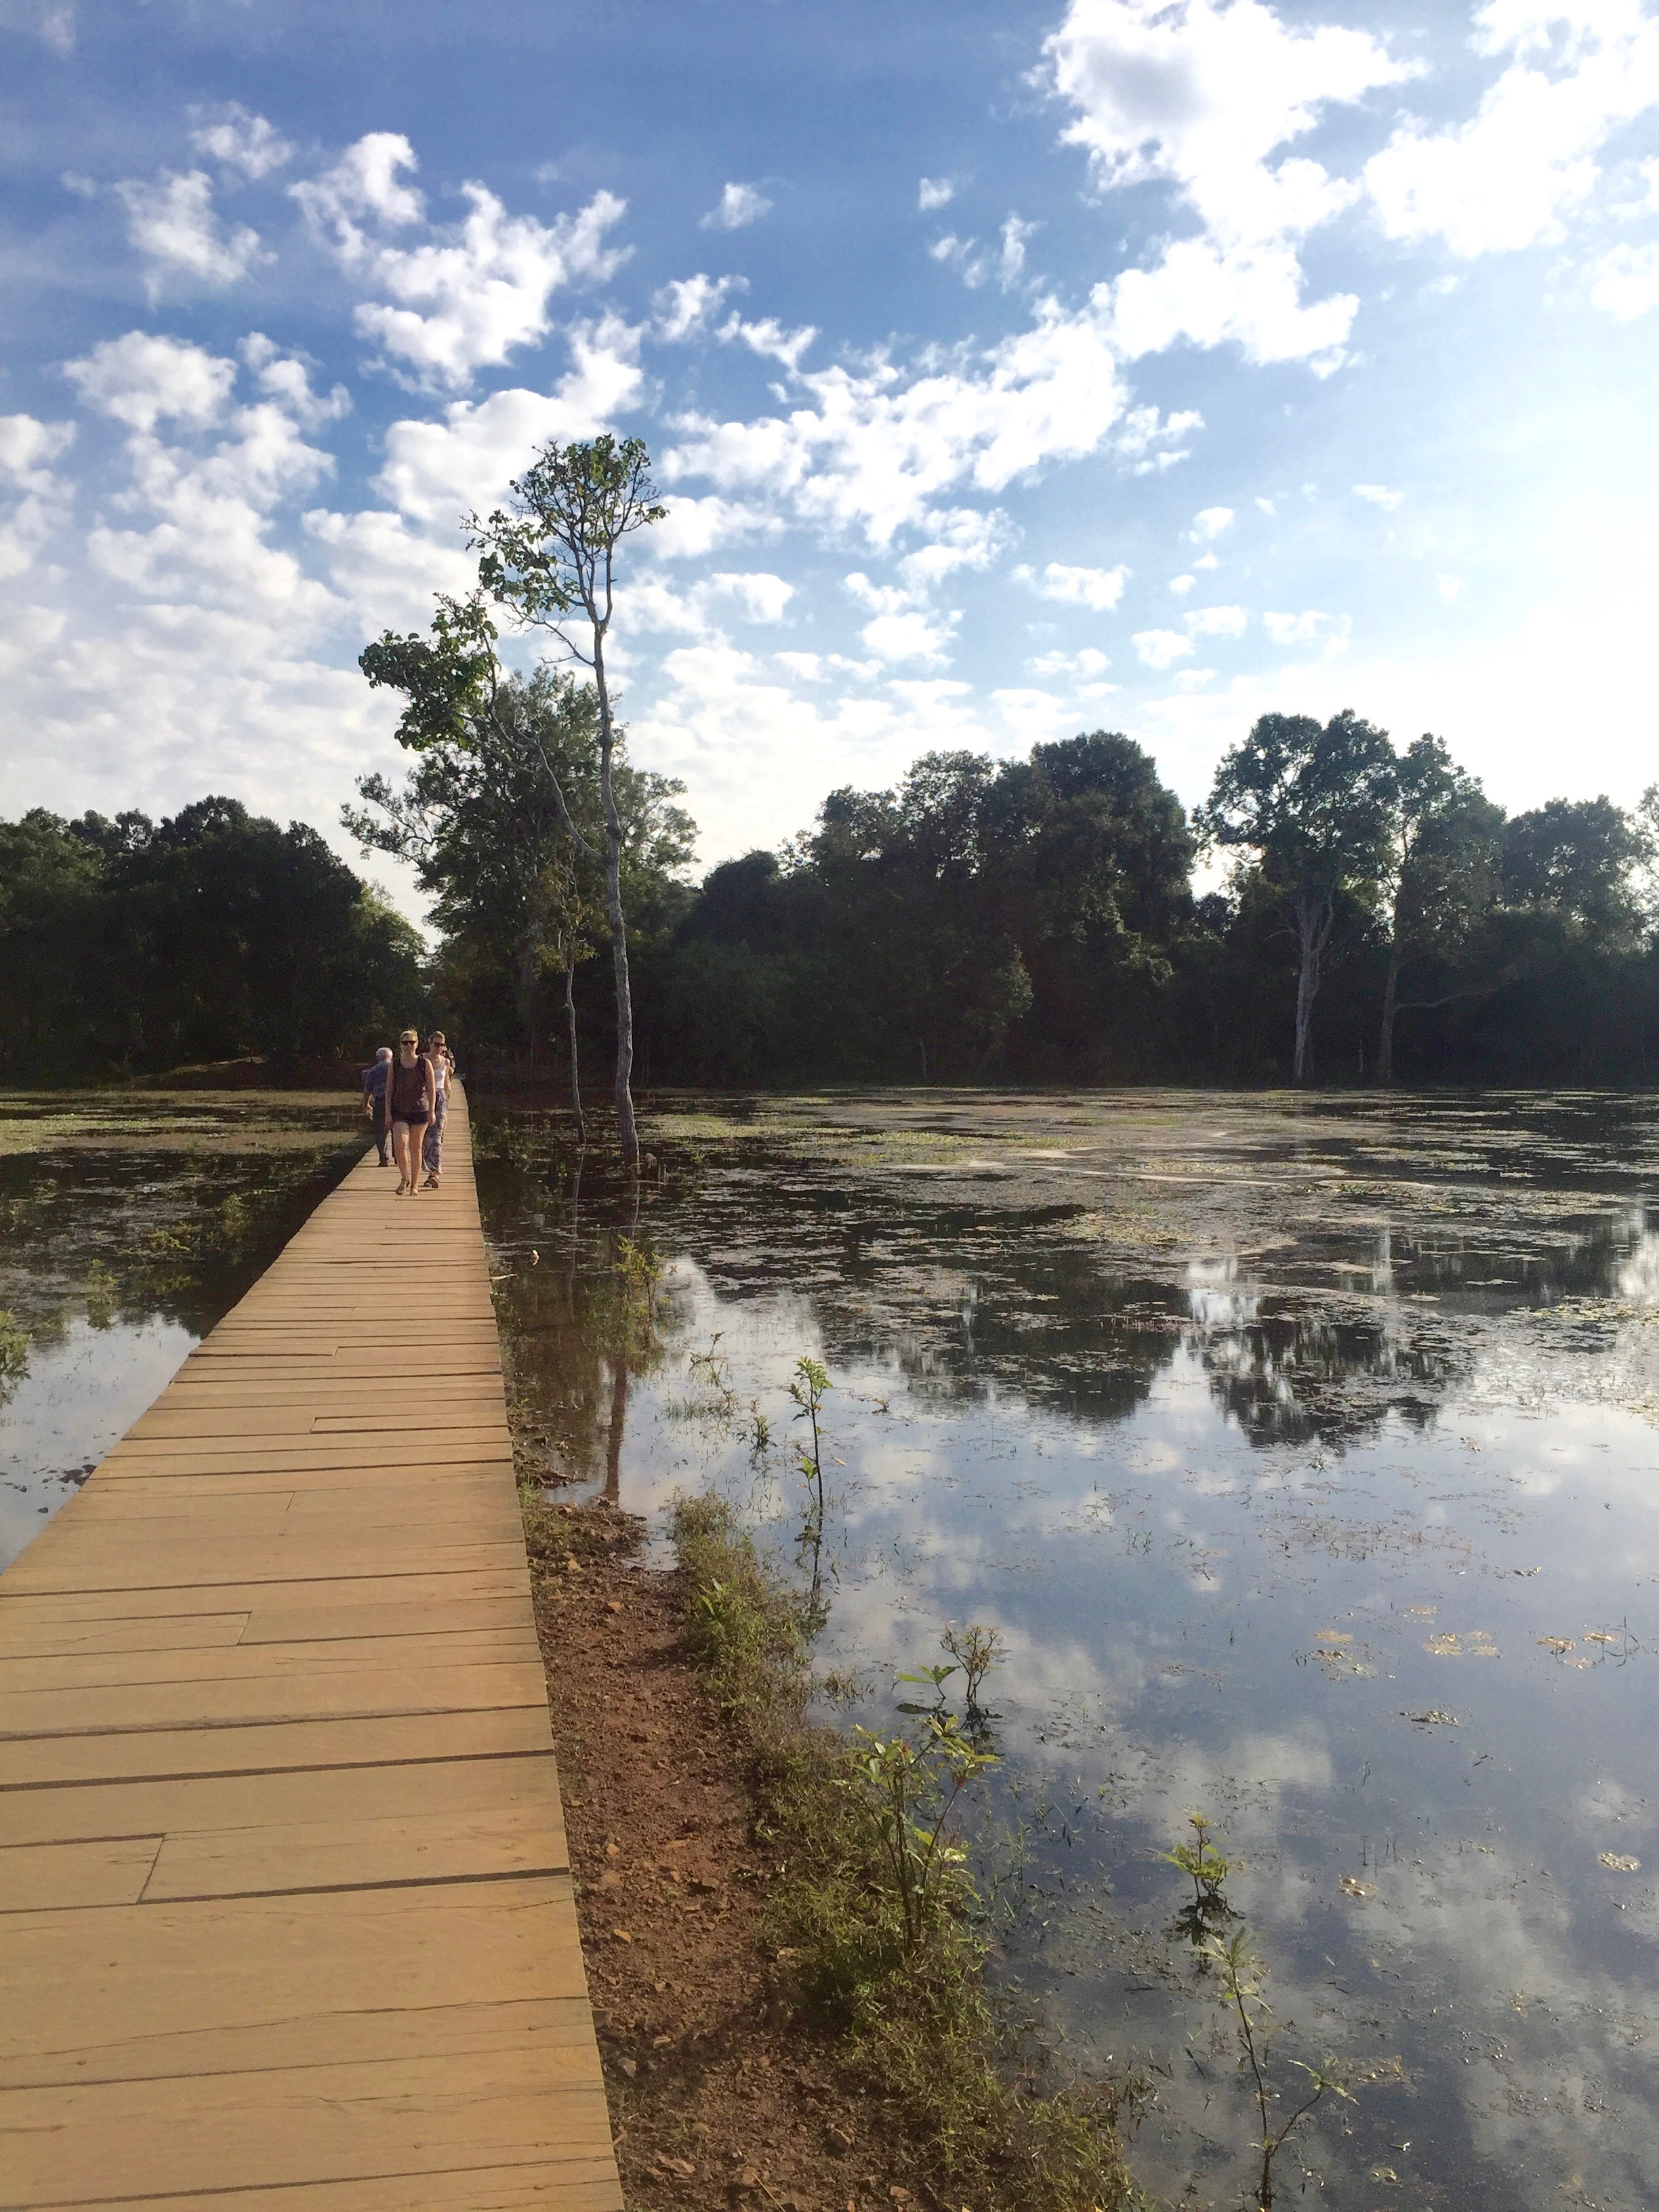 A narrow boardwalk leads you to Neak Pean, the island temple.